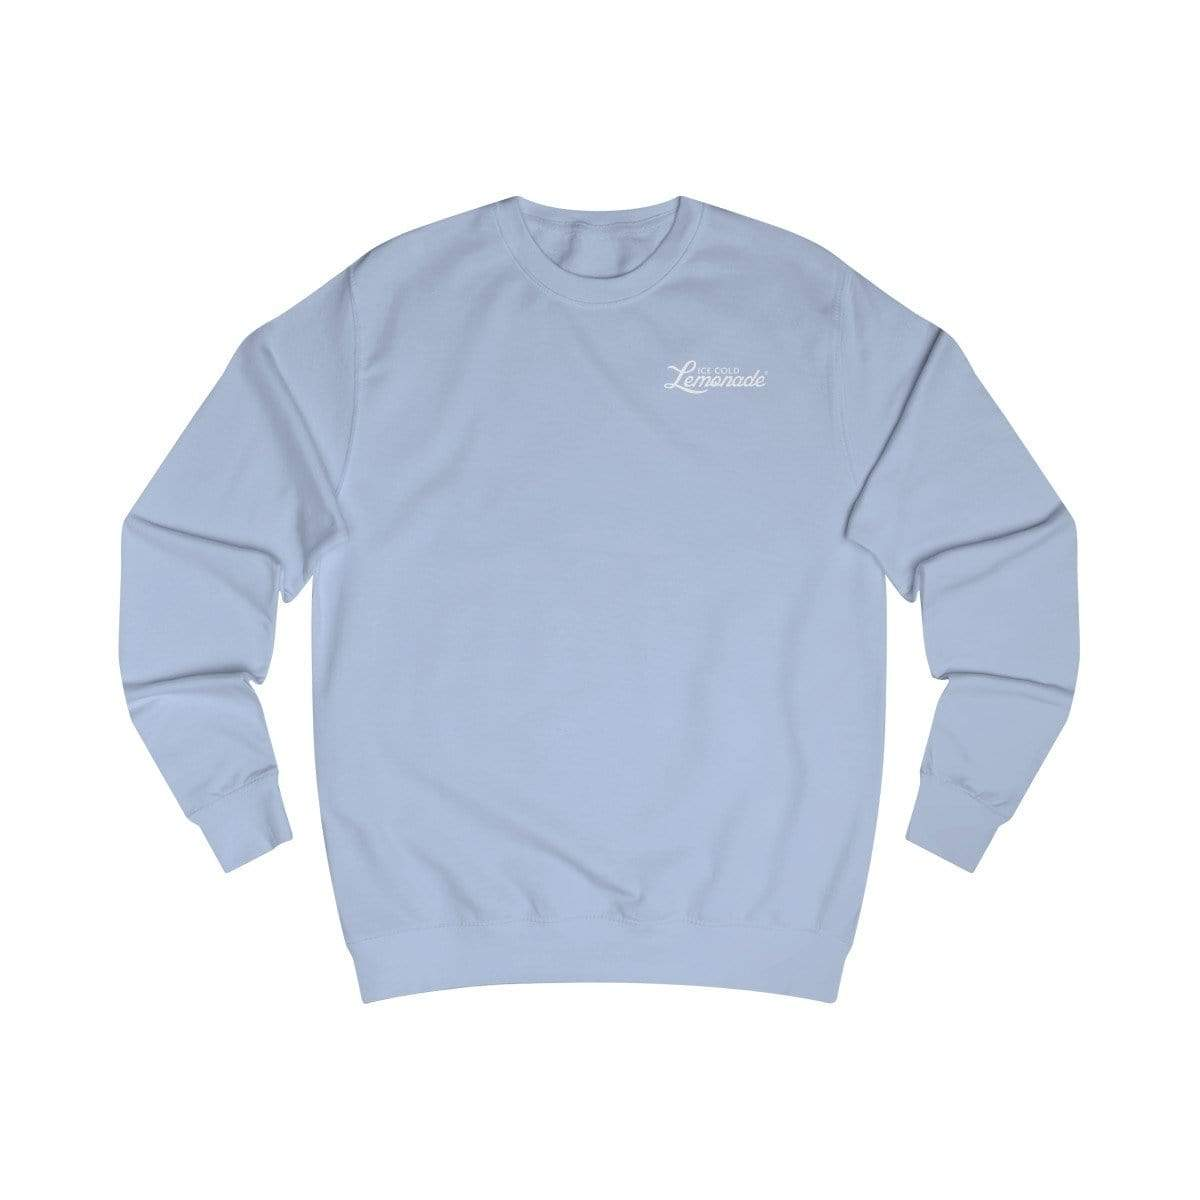 Don't Hate // Make Lemonade Crewneck Sweatshirt - Ice Cold Lmnd Don't Hate // Make Lemonade Crewneck Sweatshirt